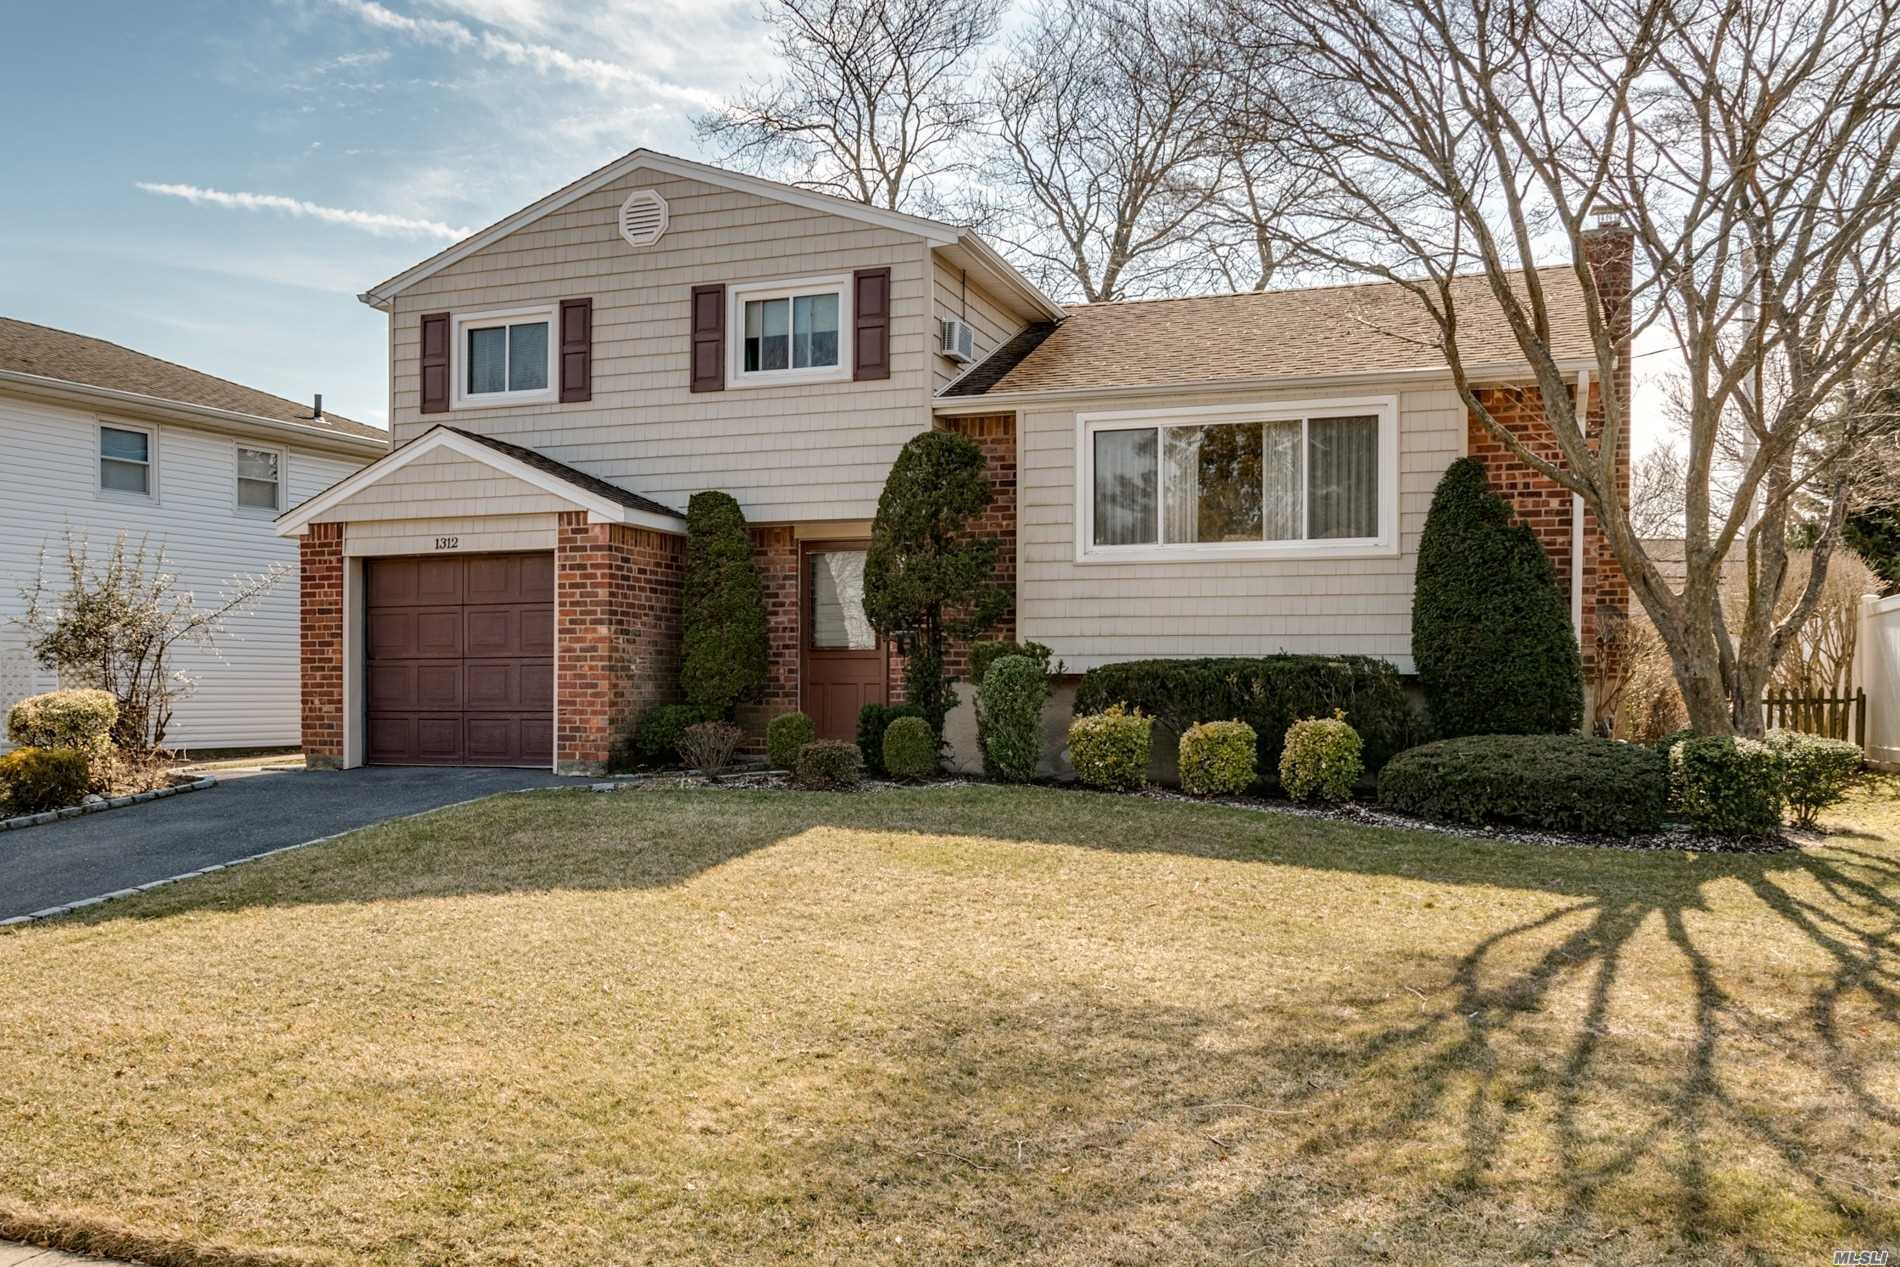 *The AMERICAN DREAM*, You can have a Vynl/Brick 3 Bedroom, 1.5 bath Split Level home set on a quiet, tree lined street in Wantagh Forest Lake Schl (Sd#23) located in Holiday Park on 6000+ sq ft lot, home features Frmal diningrm, spacious entertainers livingroom, delightful sun-lit- eat in kitchen that over looks a private secluded yard, family room, basement, New Gas Boiler heat+h/w, washer/dryer main level, kitchen 'as is'-price reduced( because of this)/.low, low taxes, close to schools, houses of worship.